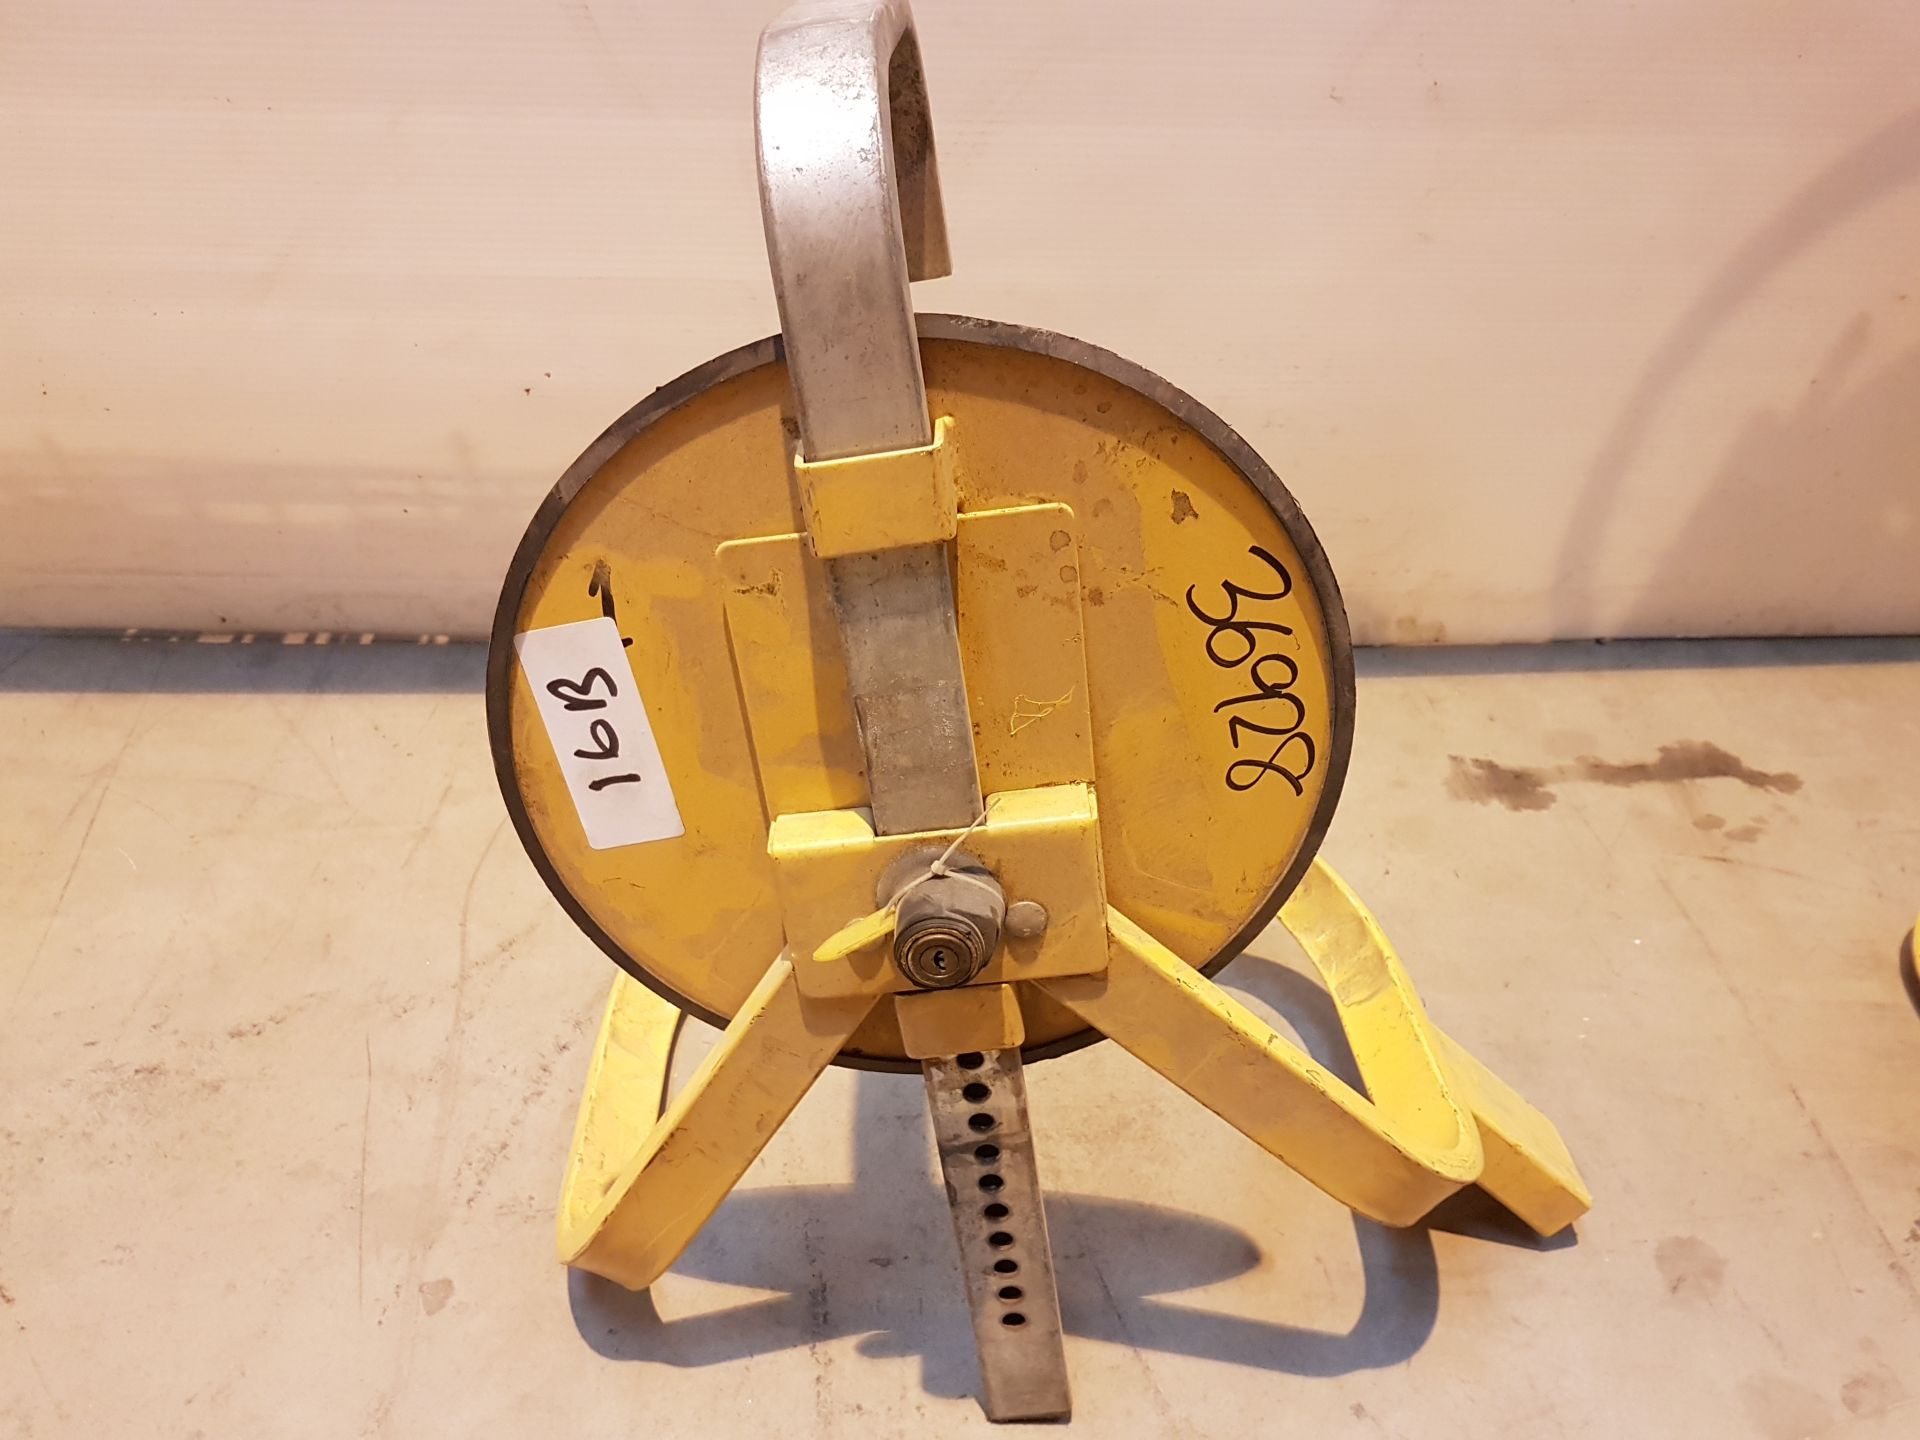 Lot 16 - Wheel Clamp with Key 36928, working